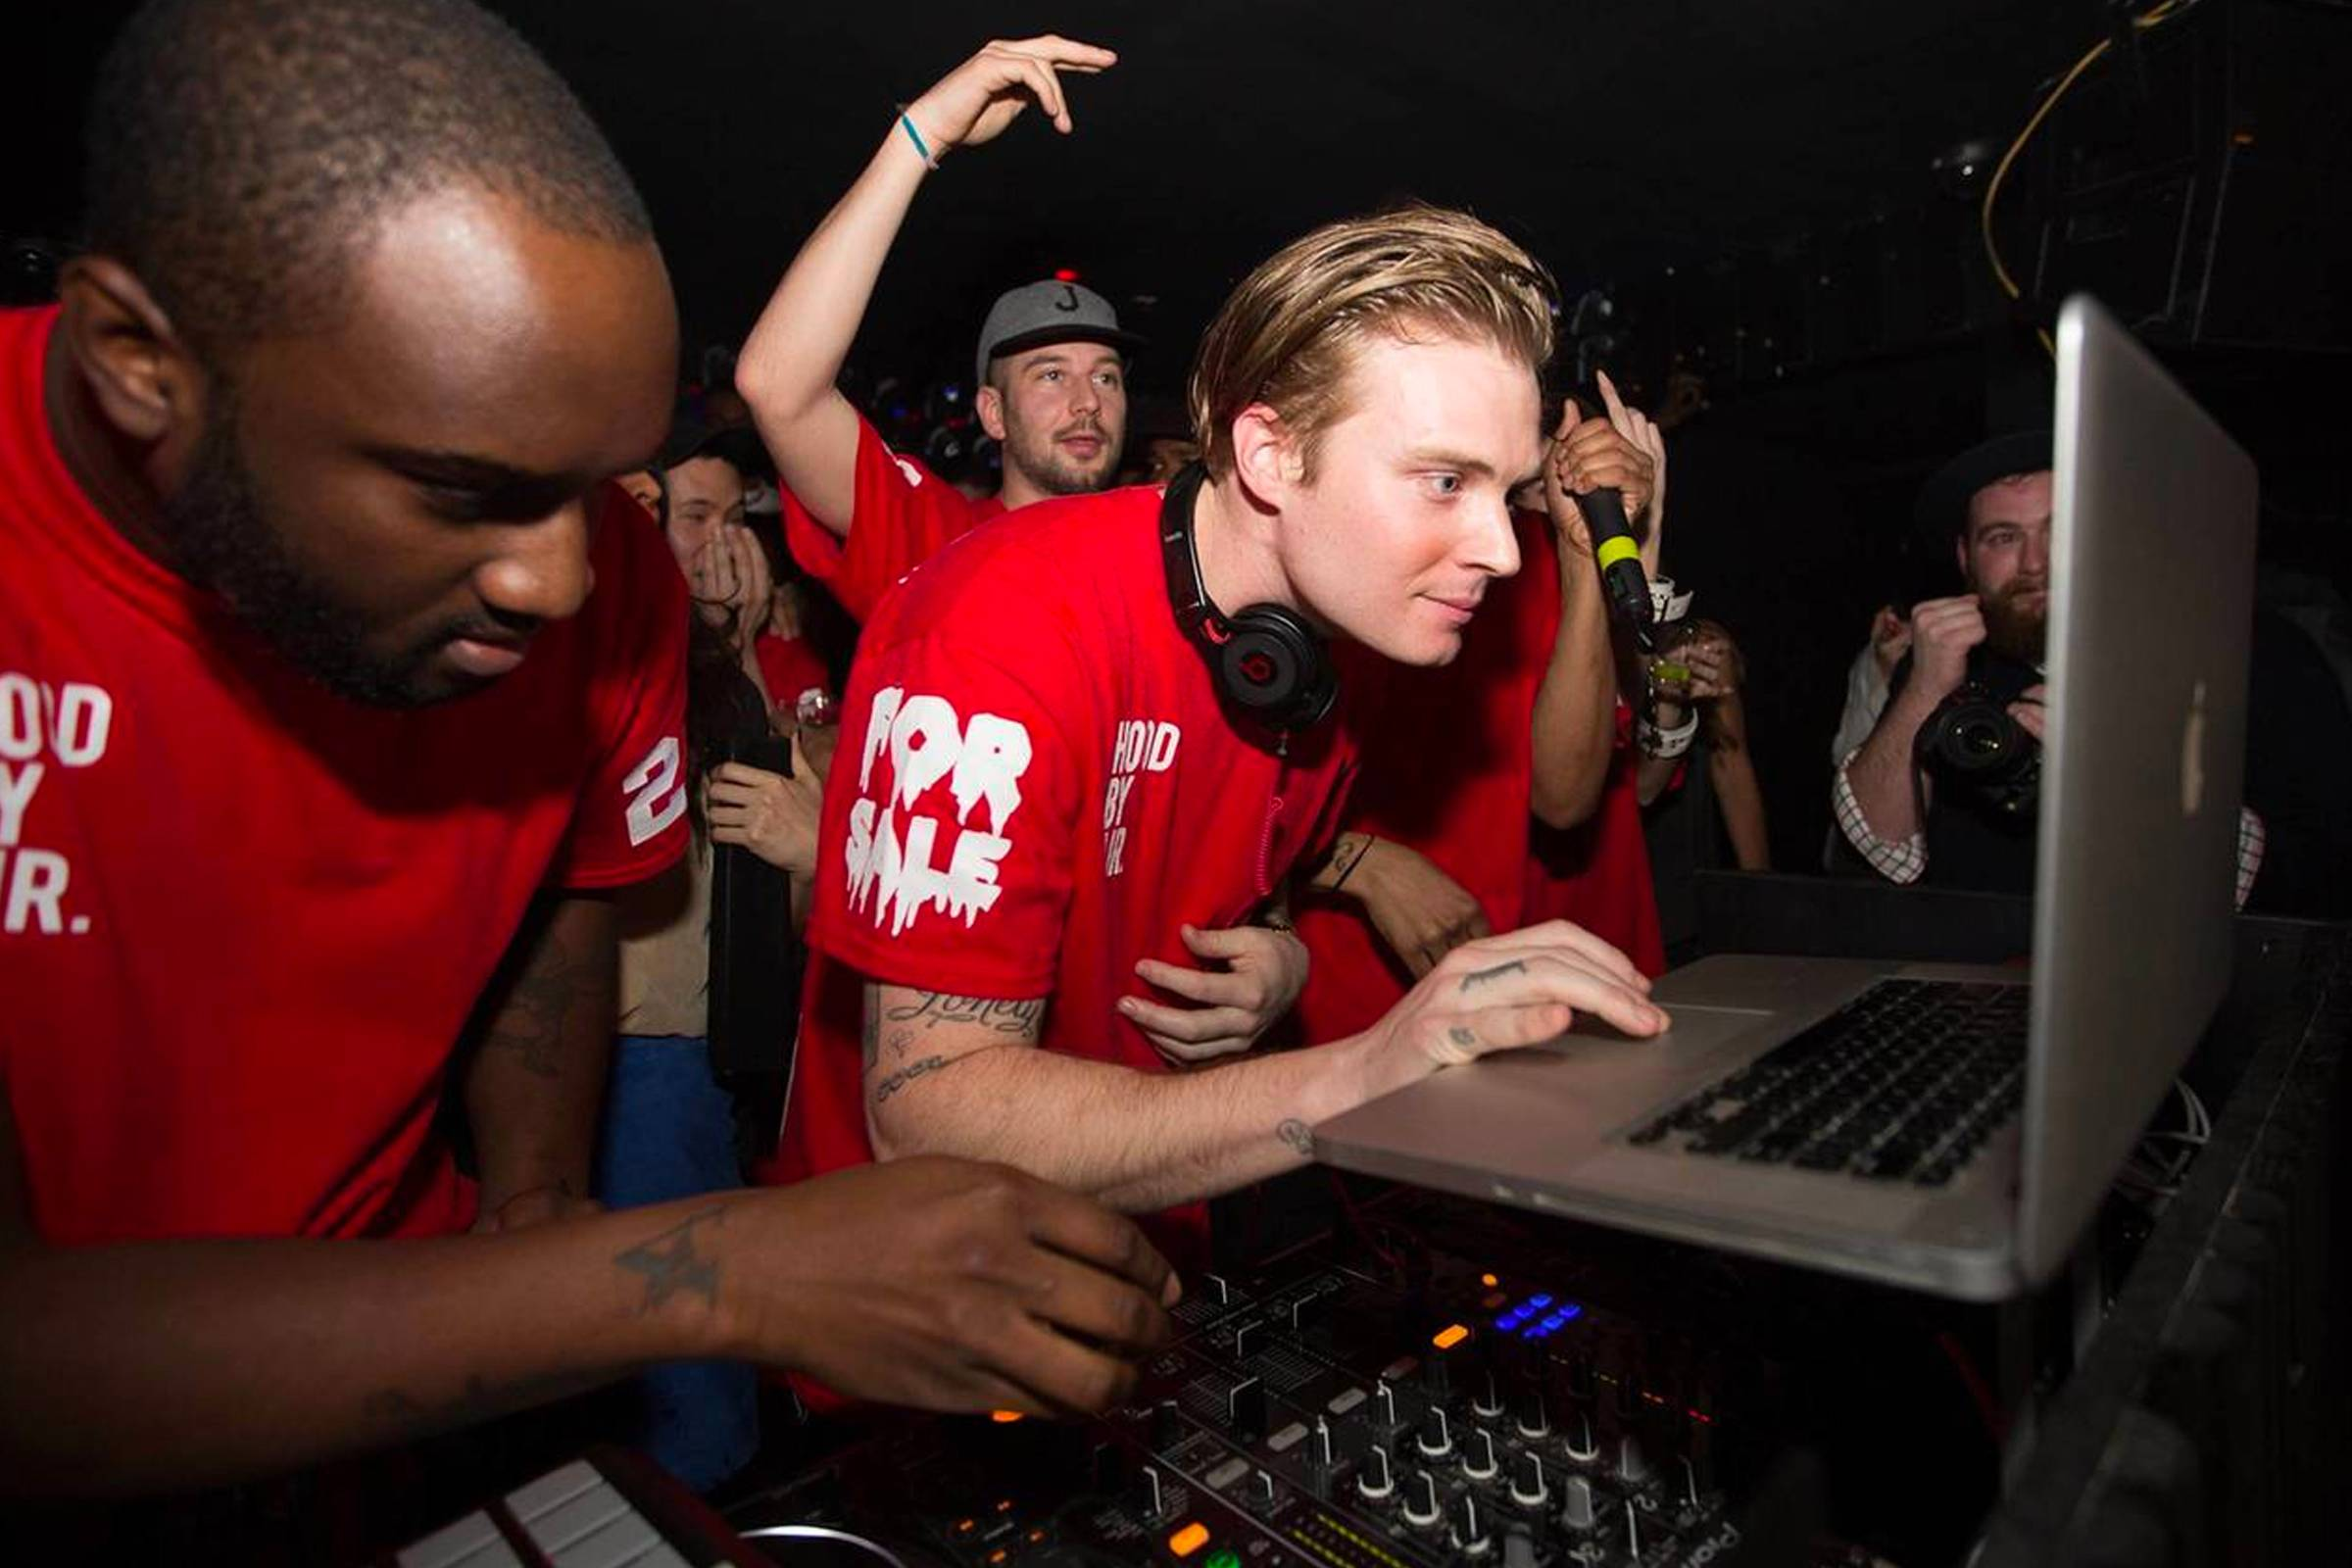 Virgil Abloh (left) DJing with Justin Saunders (back, center) and Matthew Williams (front, center) as the #BEENTRILL# collective